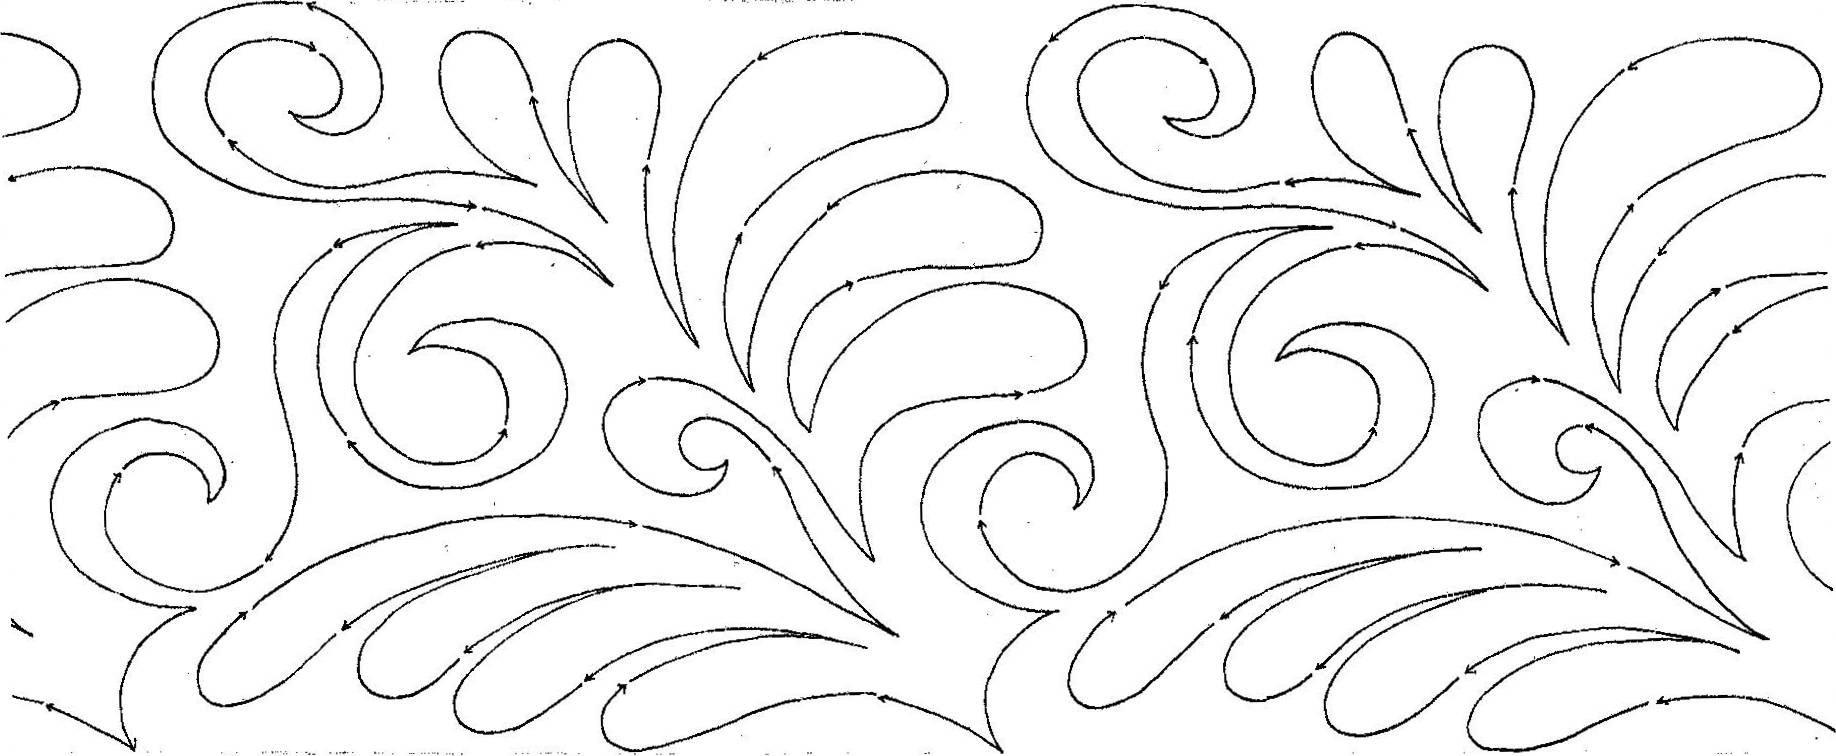 Edge to edge pantograph patterns product categories meadowlyon designs for Free pantographs